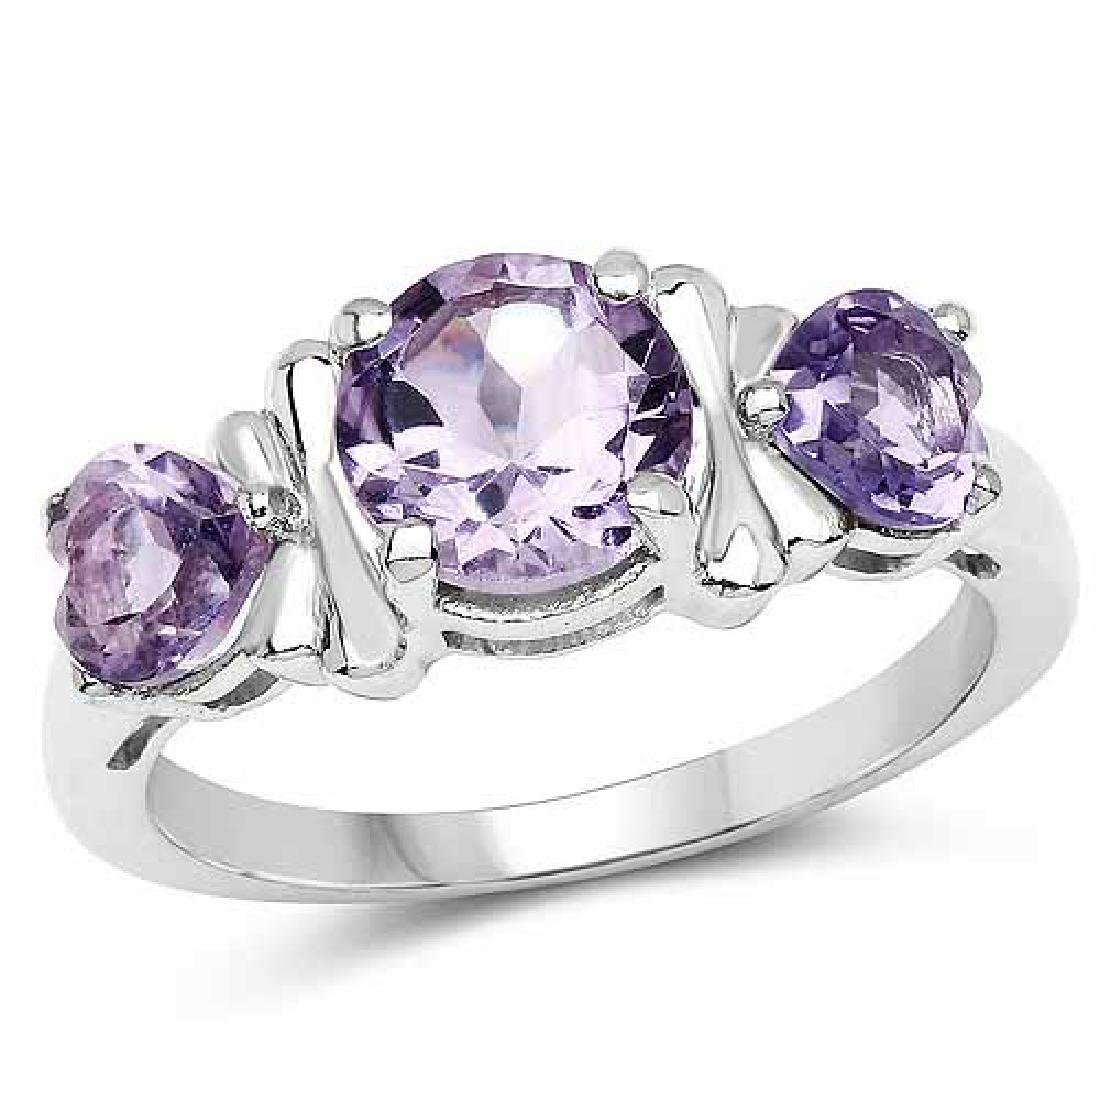 2.05 Carat Genuine Amethyst .925 Sterling Silver Ring